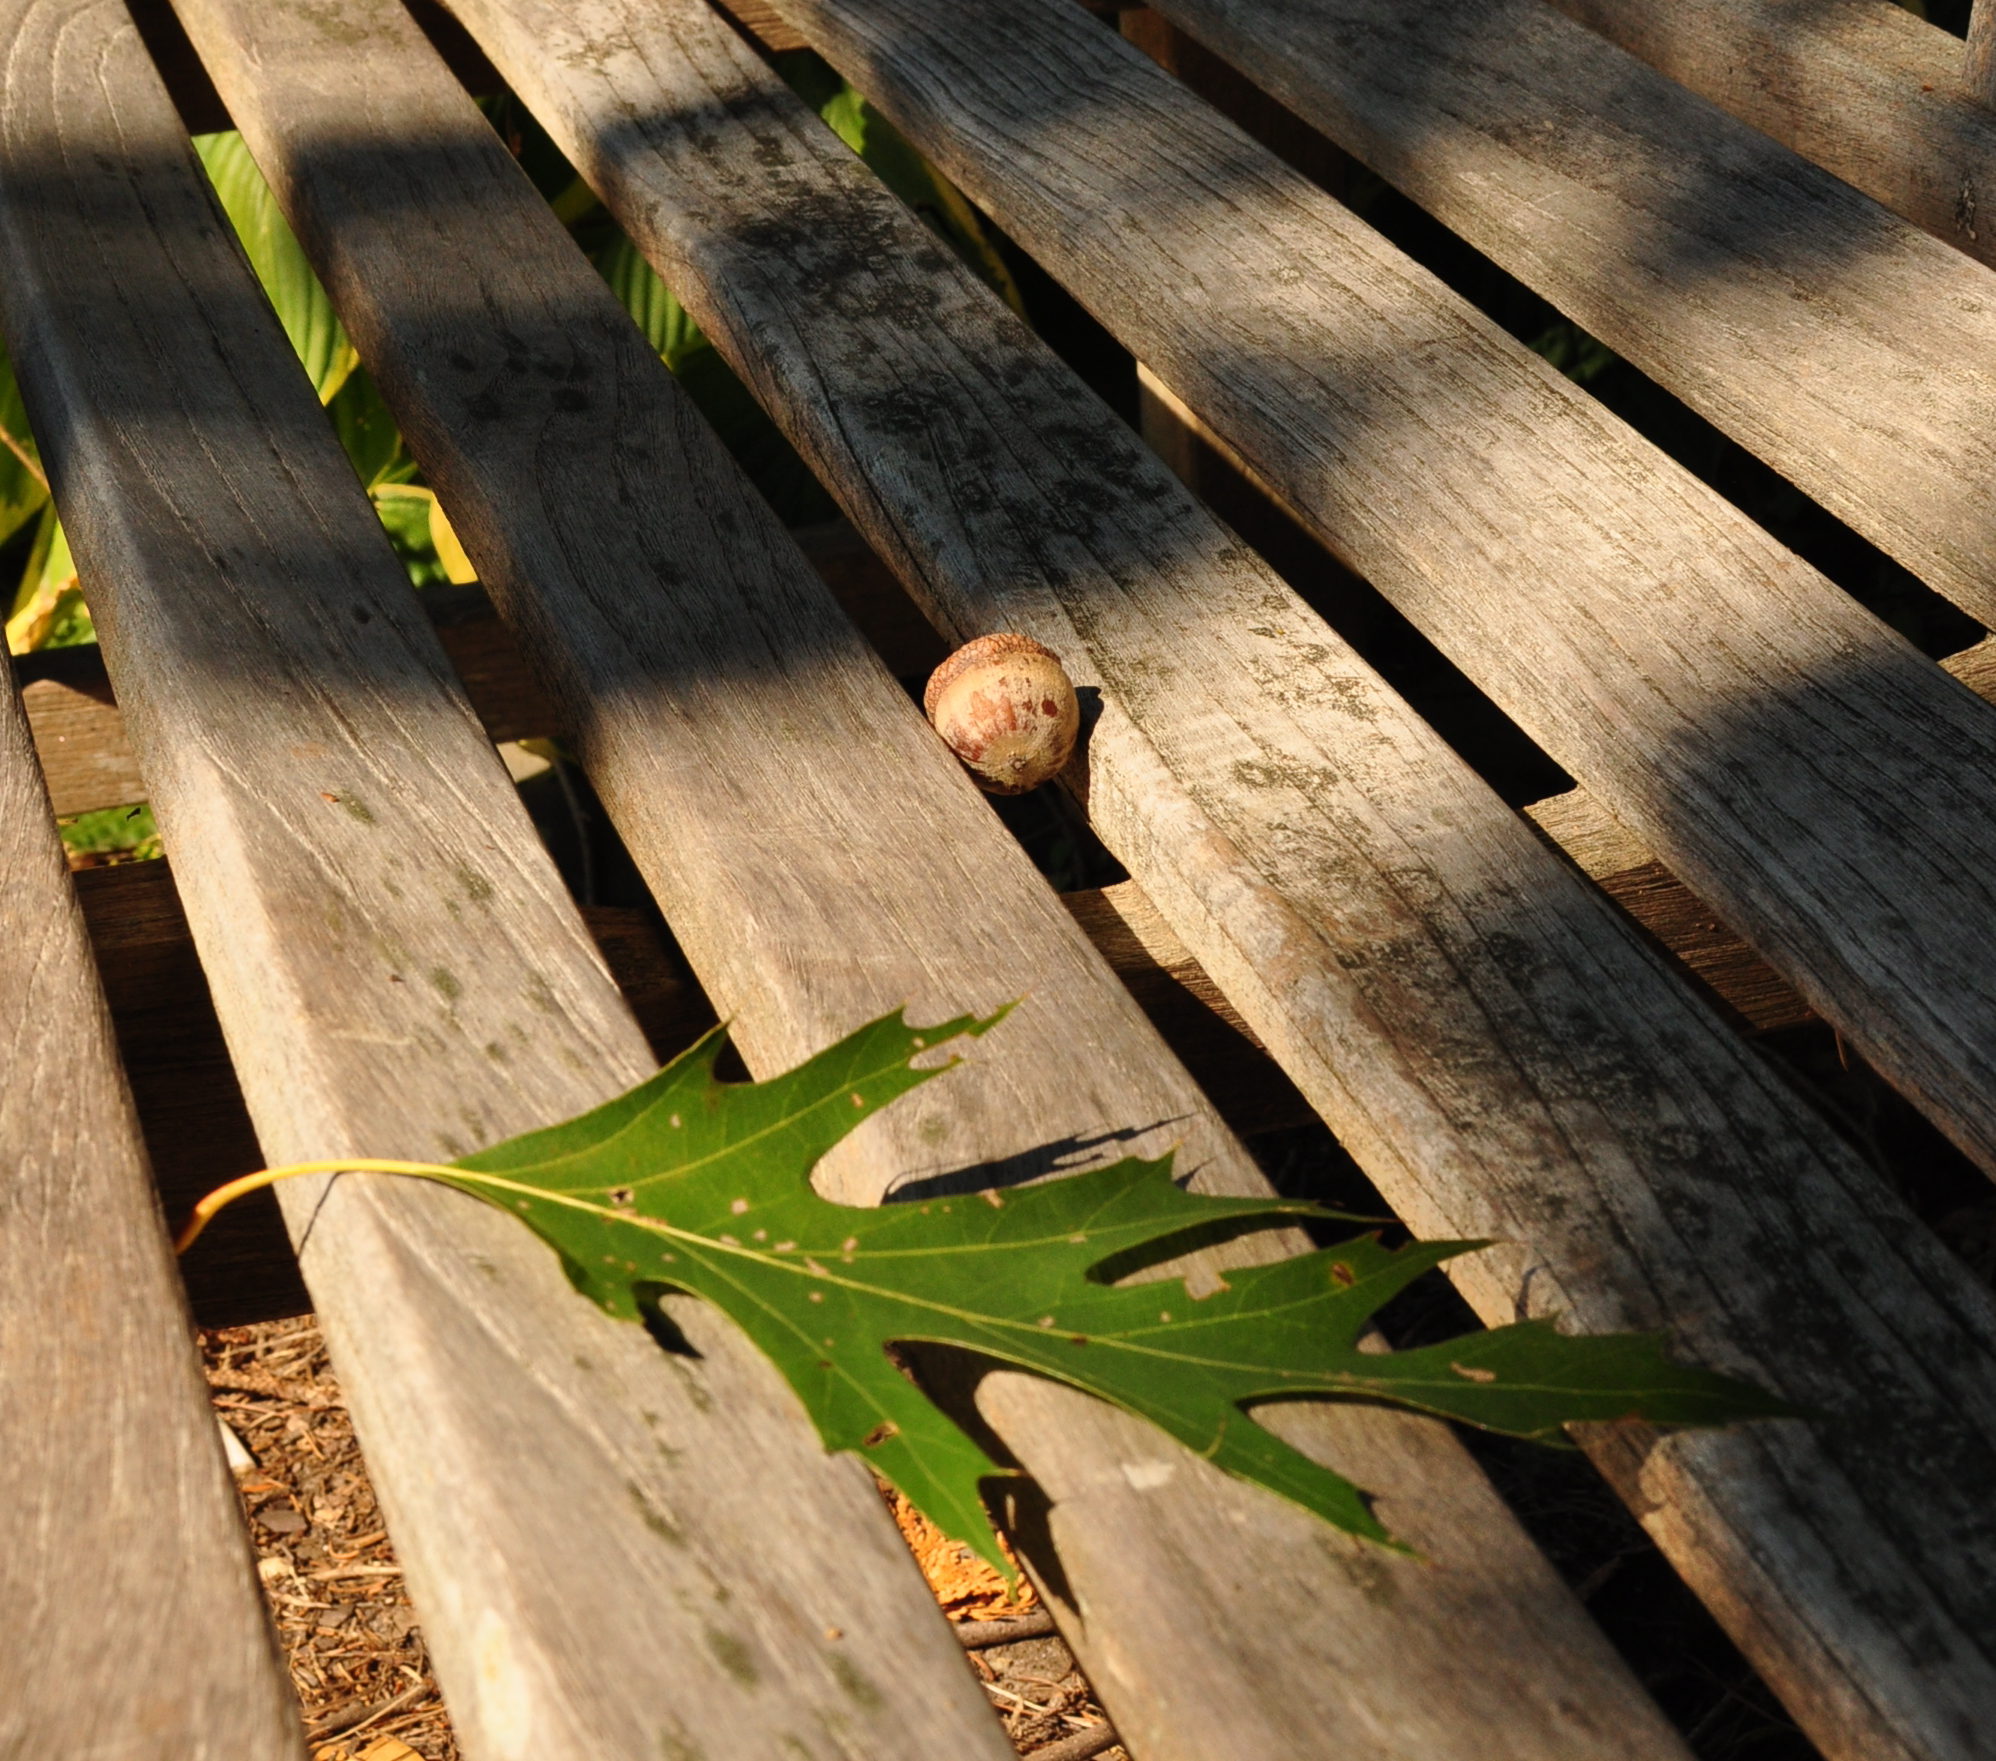 Acorn, leaf, bench.  We already have everything we need.